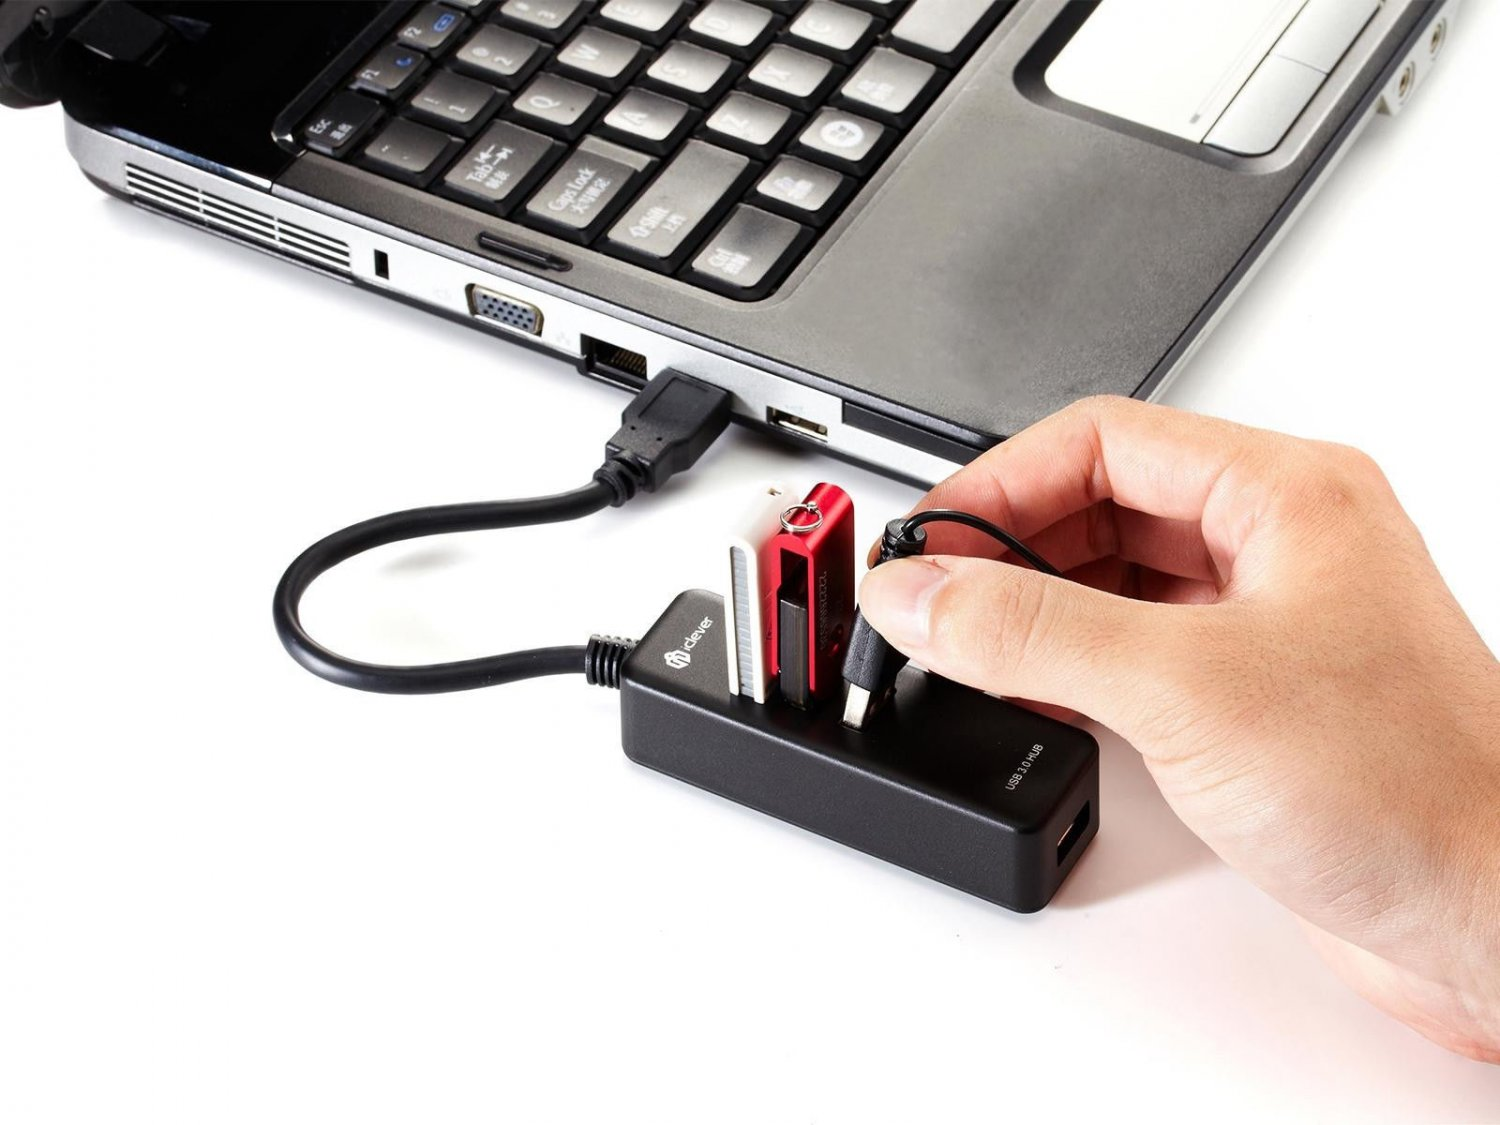 New iClever 4-Port USB 3.0 Portable Compact Hub For PC Laptop Super Speed 5Gbps